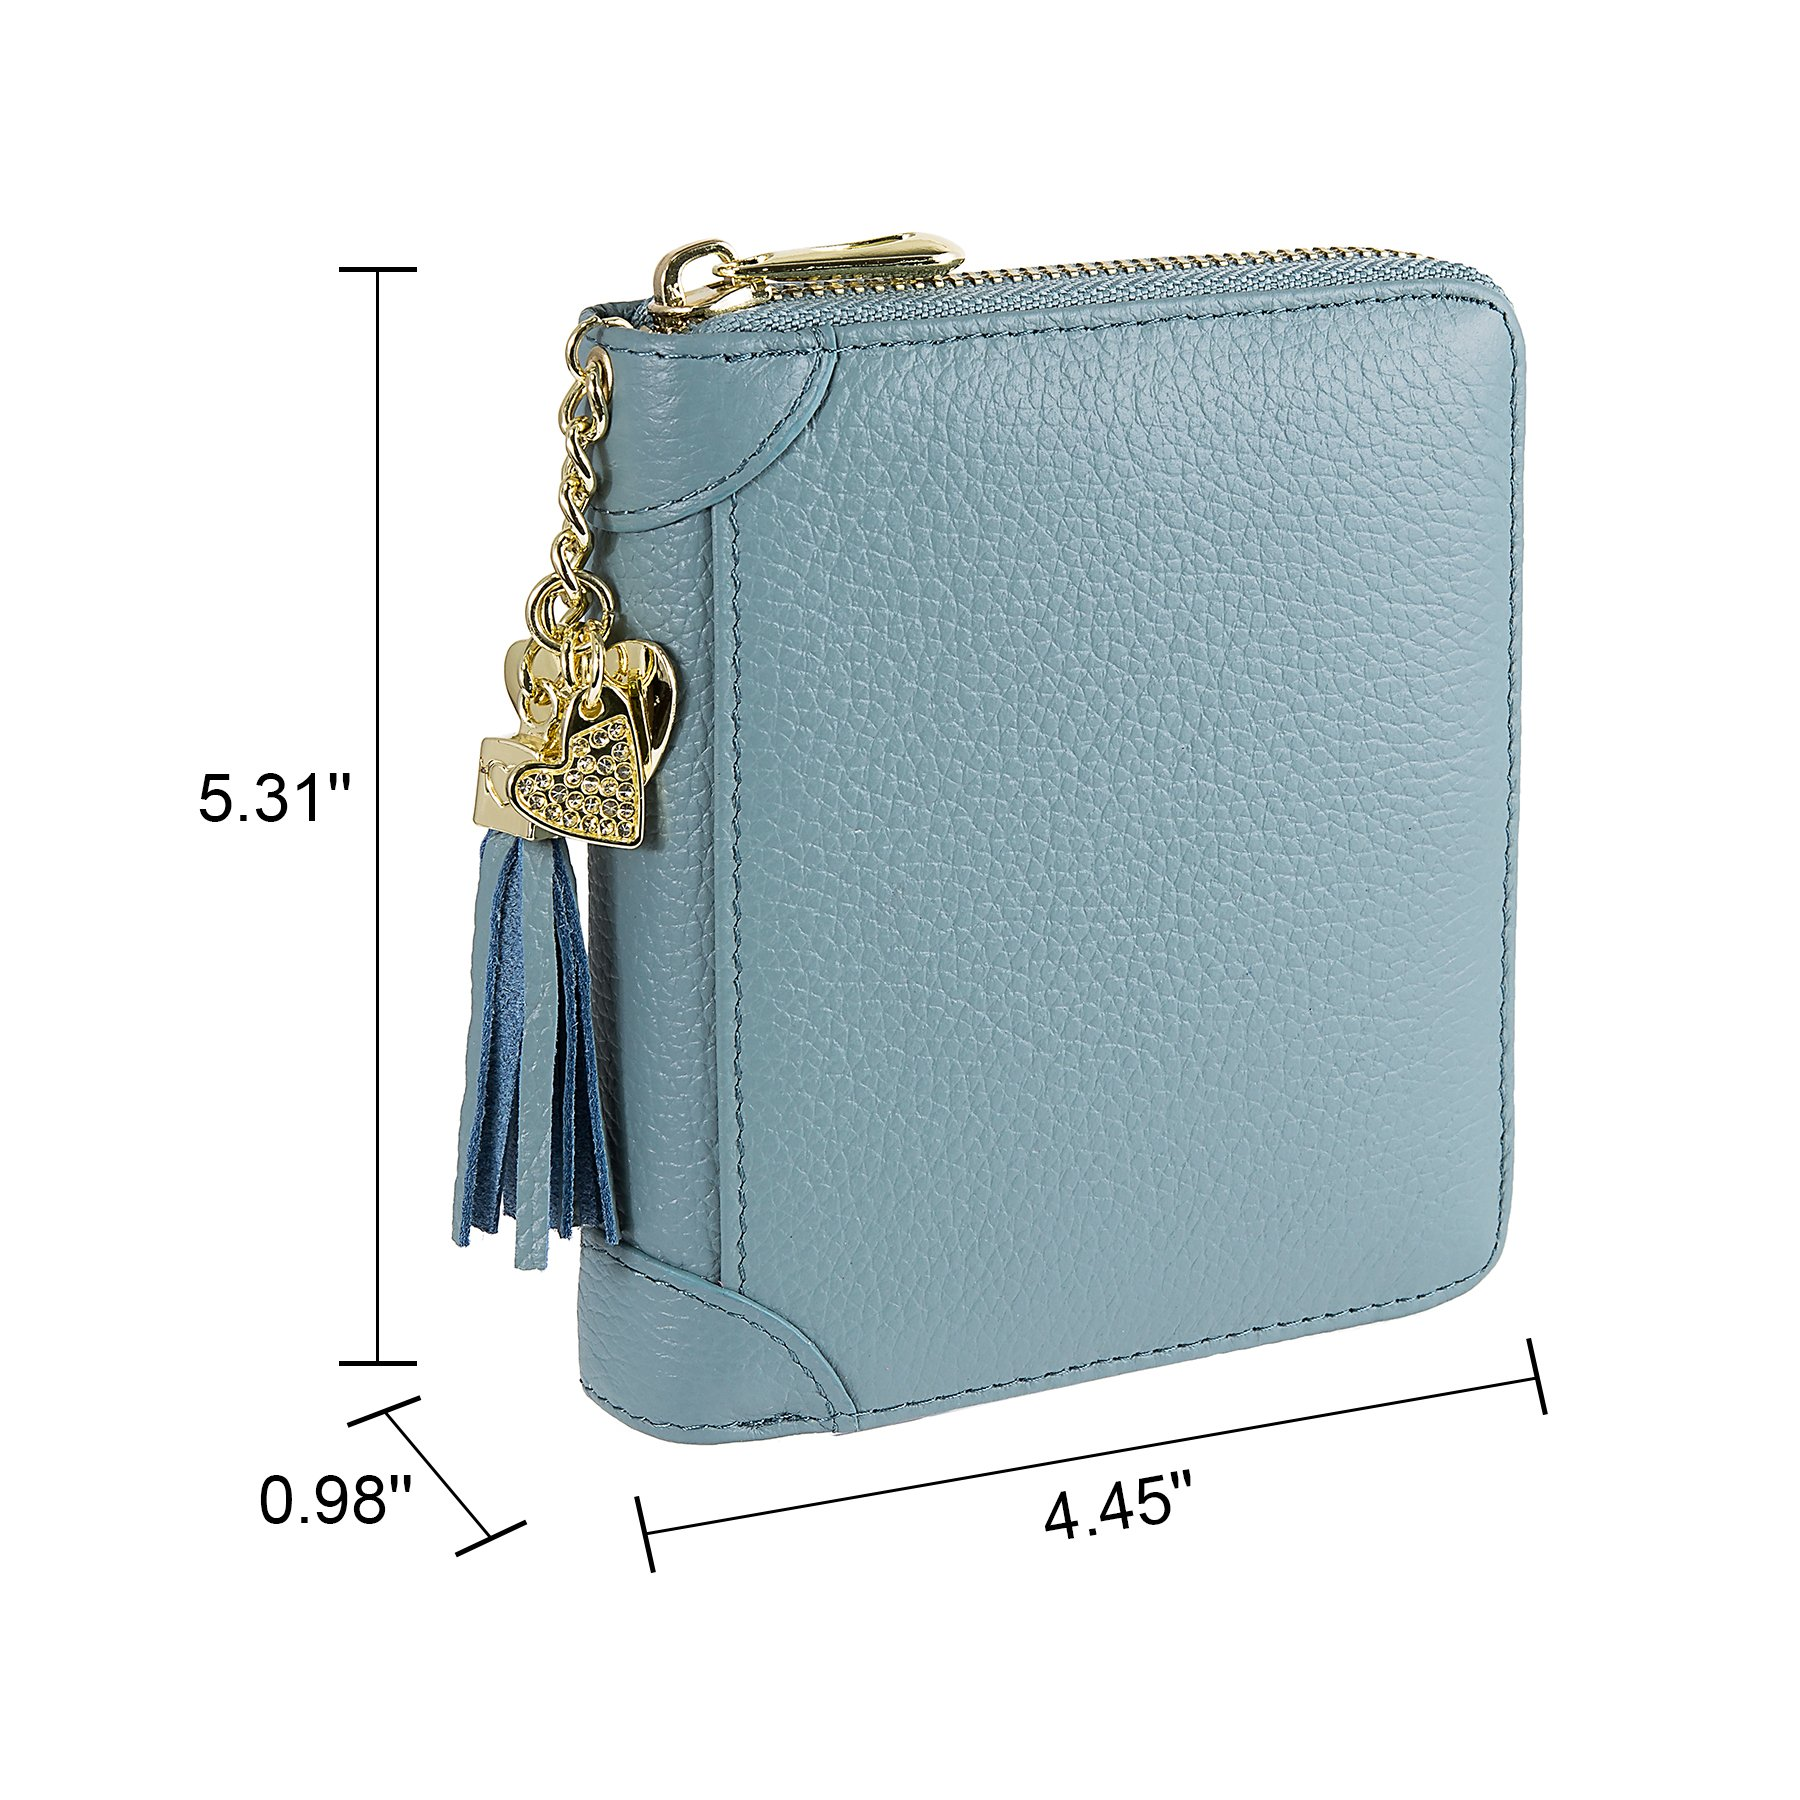 SafeCard 40 Card Solts Women's Credit Card Case Wallet 2 ID Window and Zipper Card Holder (40 Card Blue) by ZORESS (Image #5)